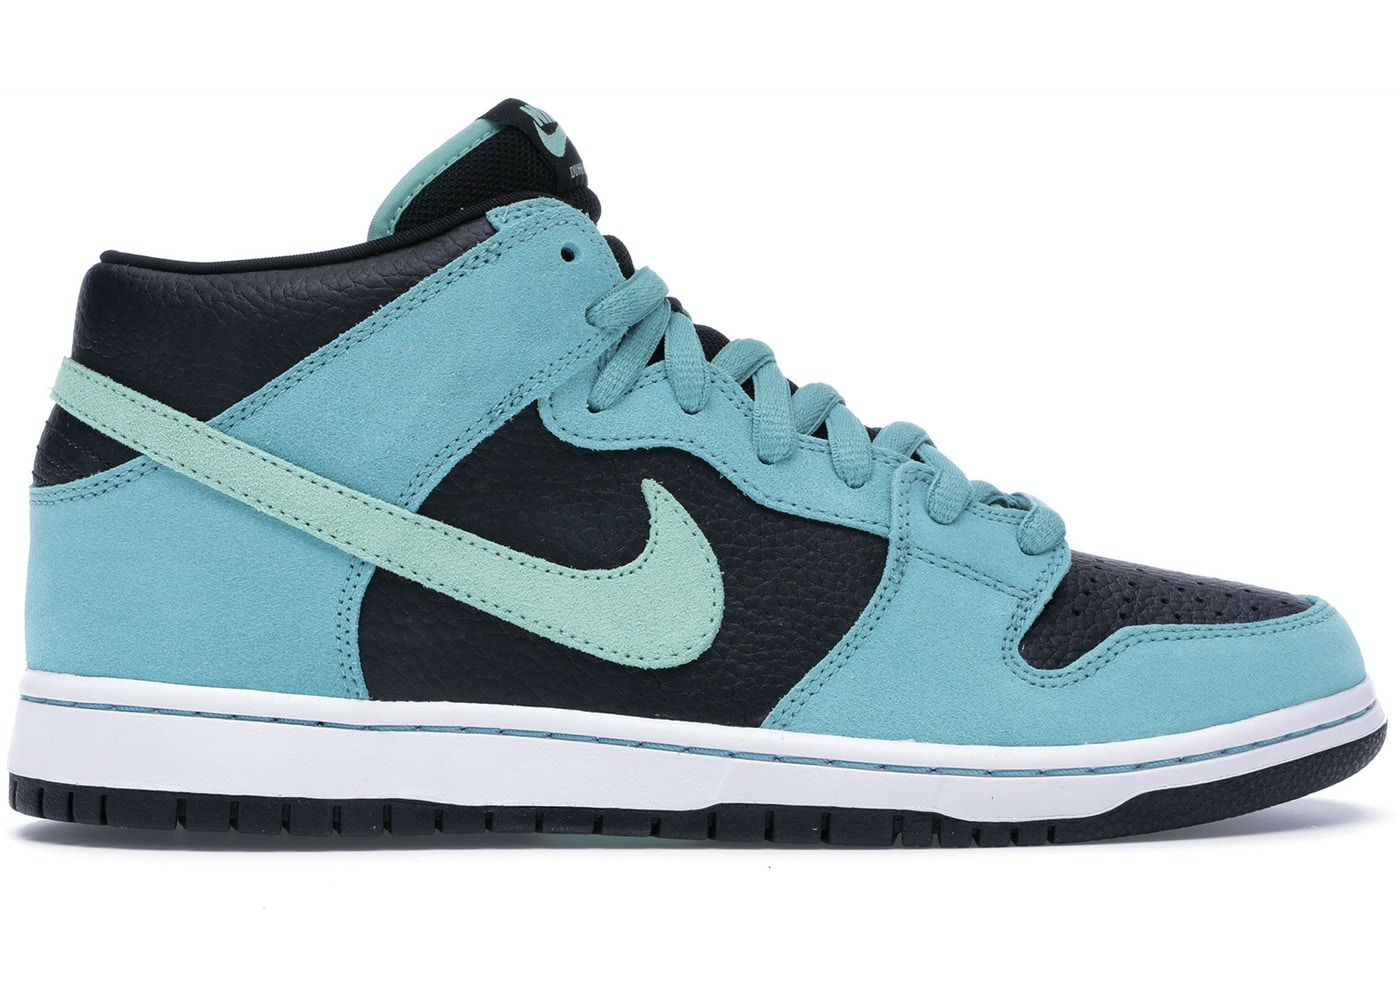 cheap for discount 0f929 a7bea Nike Dunk SB Mid Sea Crystal - 314383-033